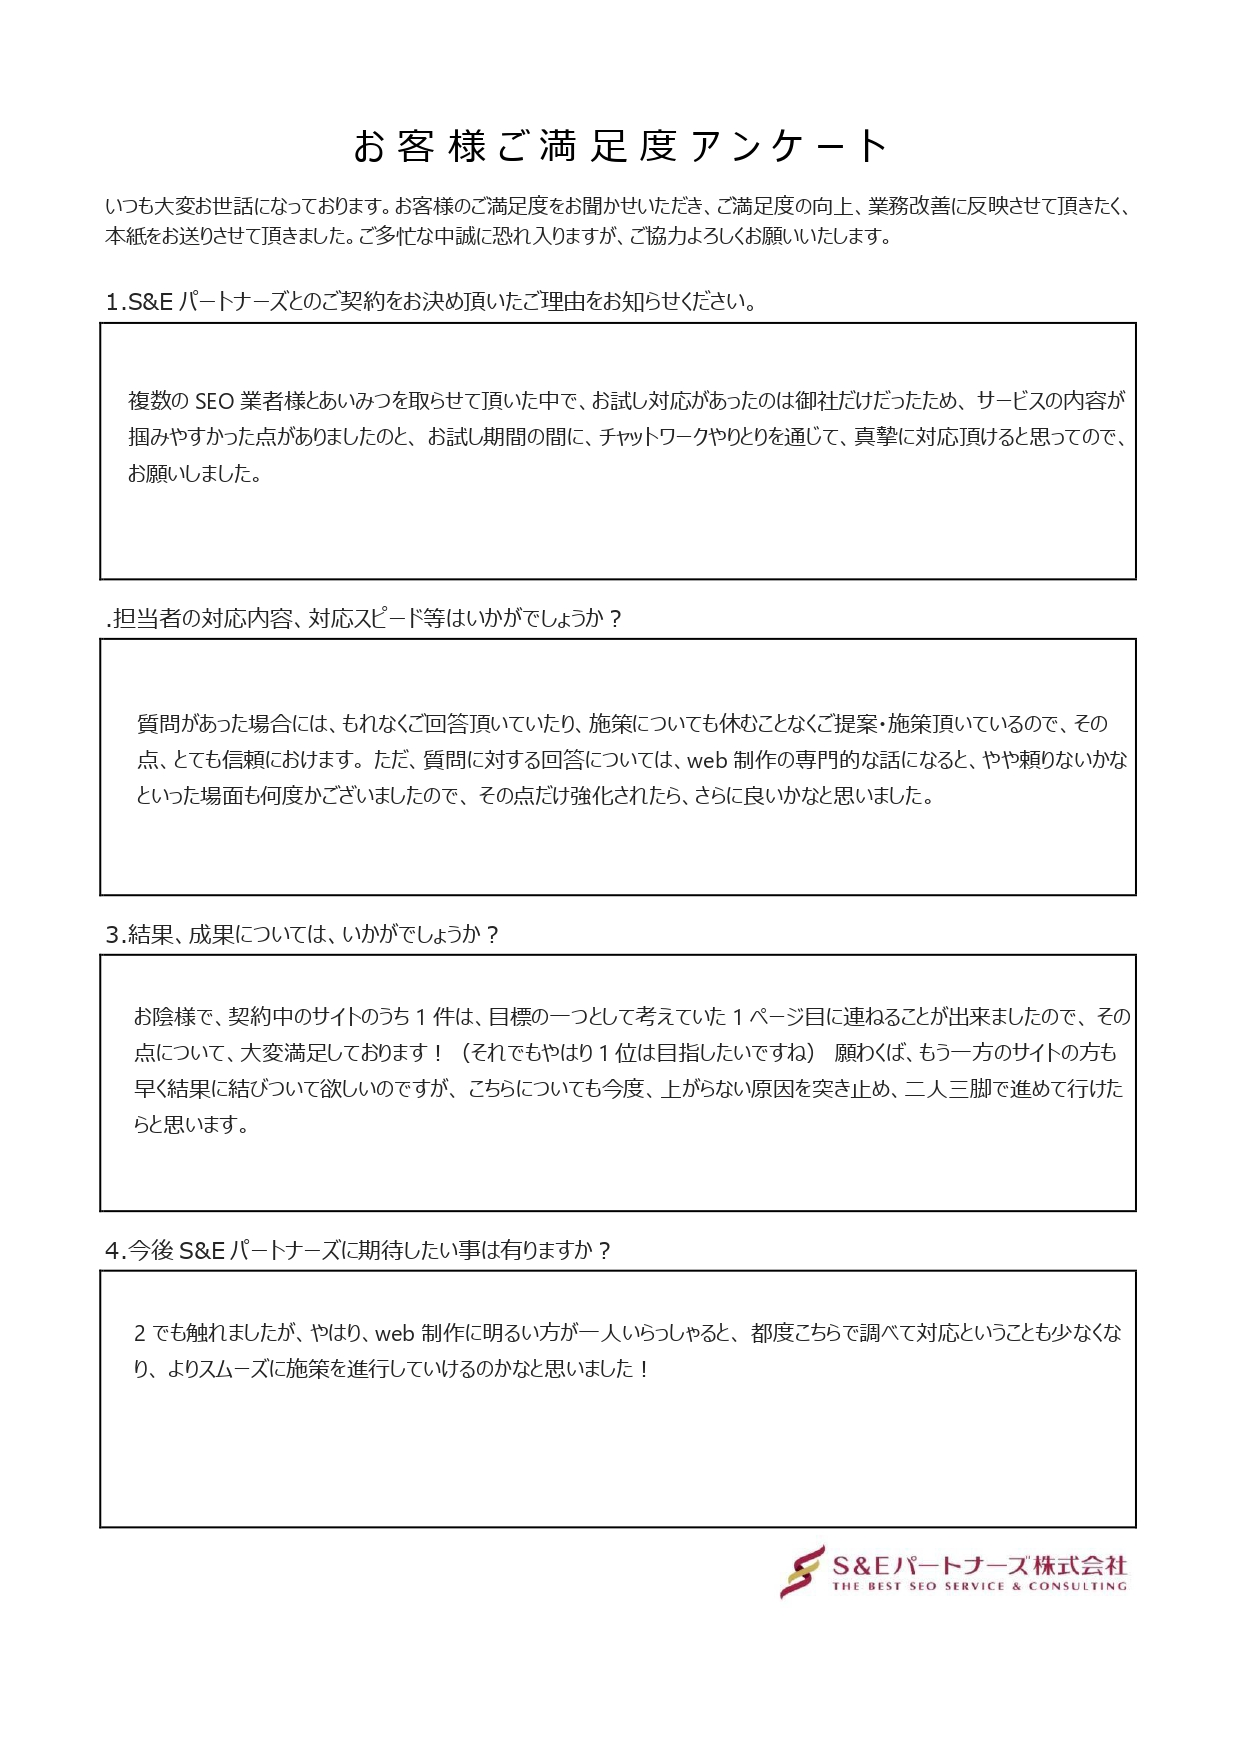 【SEO対策】占いサイトを運営されているお客様